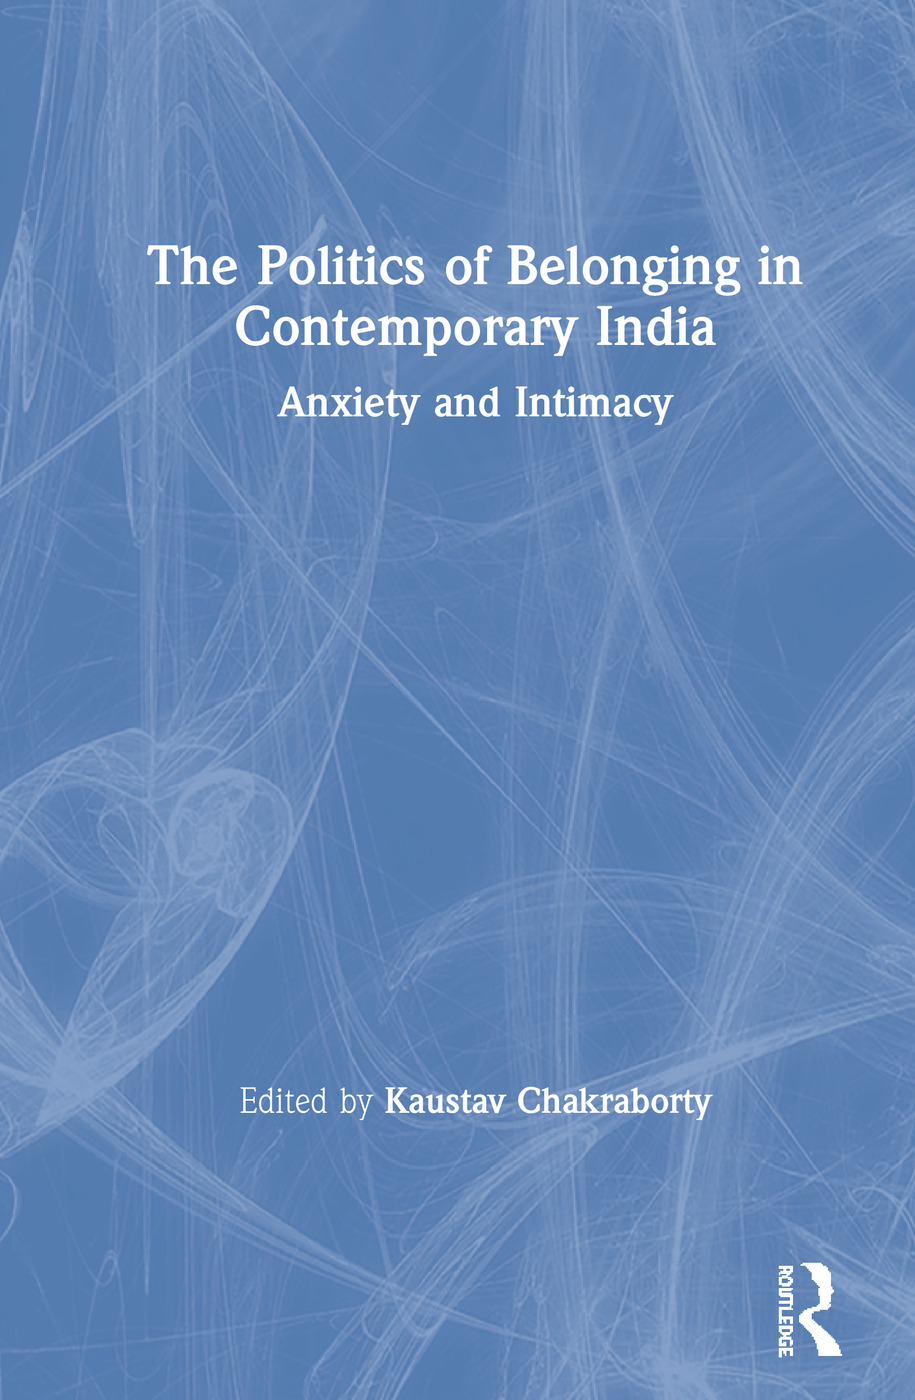 The Politics of Belonging in Contemporary India: Anxiety and Intimacy book cover